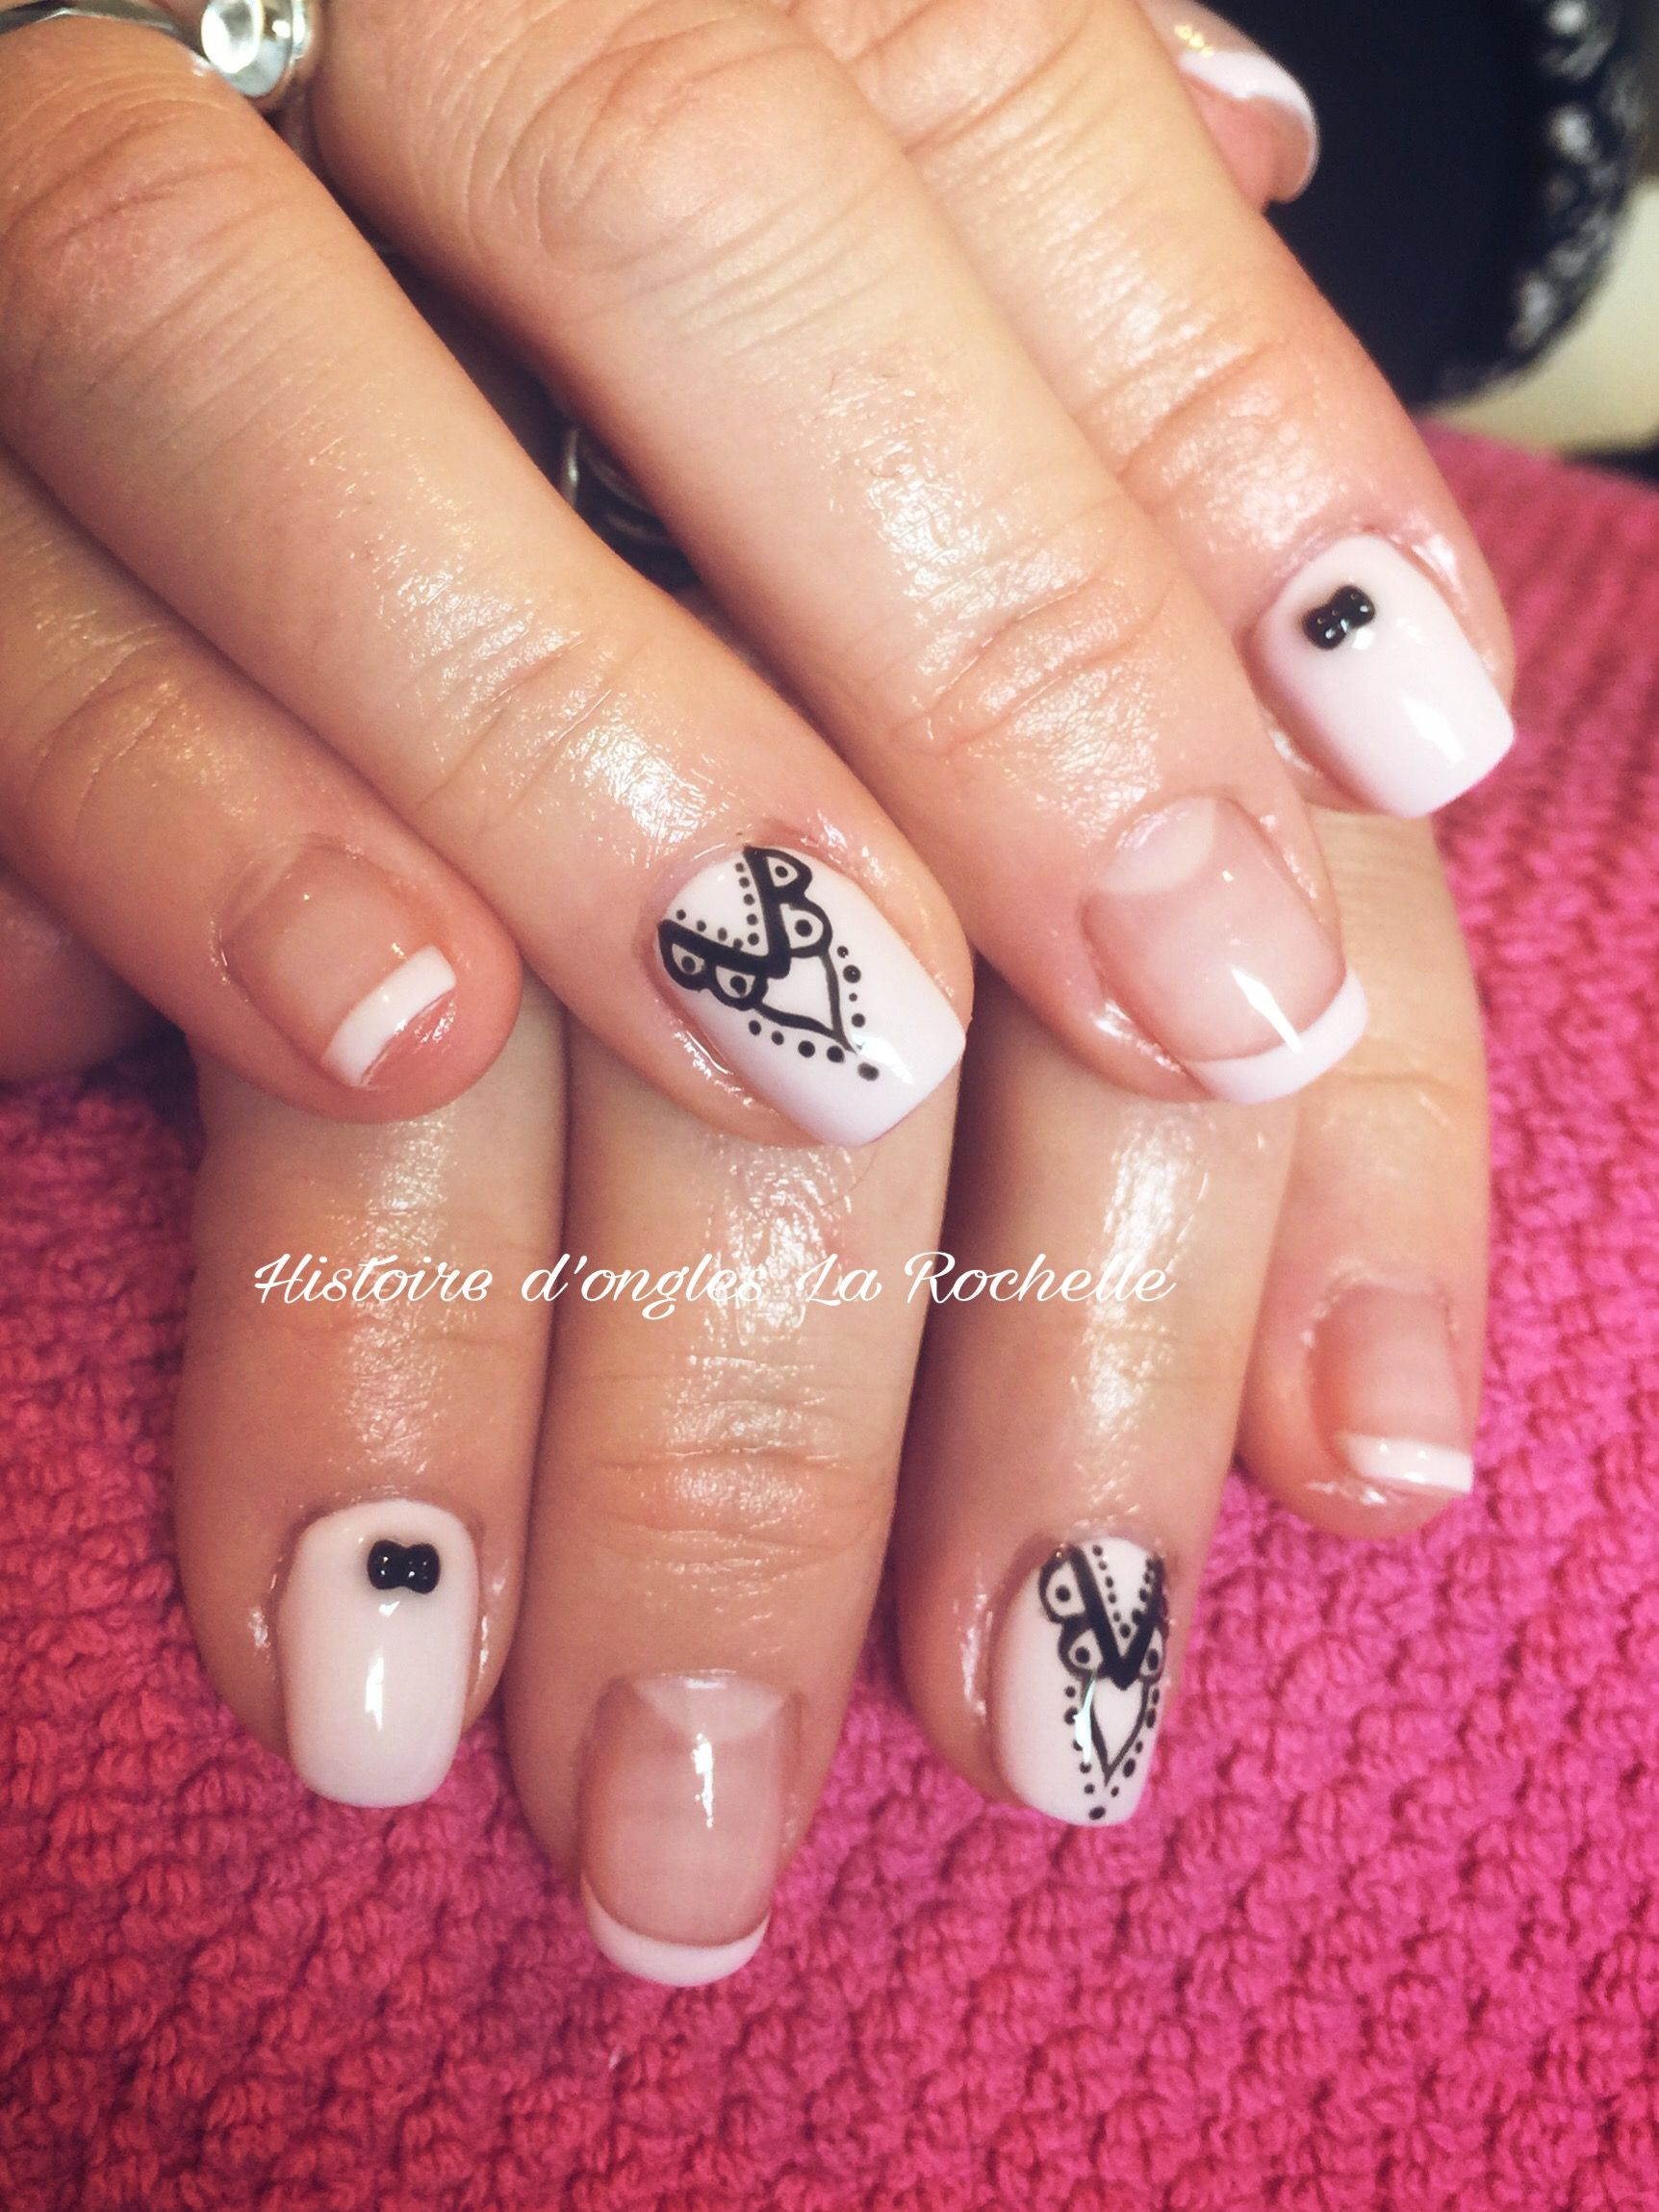 About baby boomer nail art tutorial by nded on pinterest nail art - Superbe Nail Art Mandala Ongles Nude Rose Histoire D Ongles R Alise Pinterest